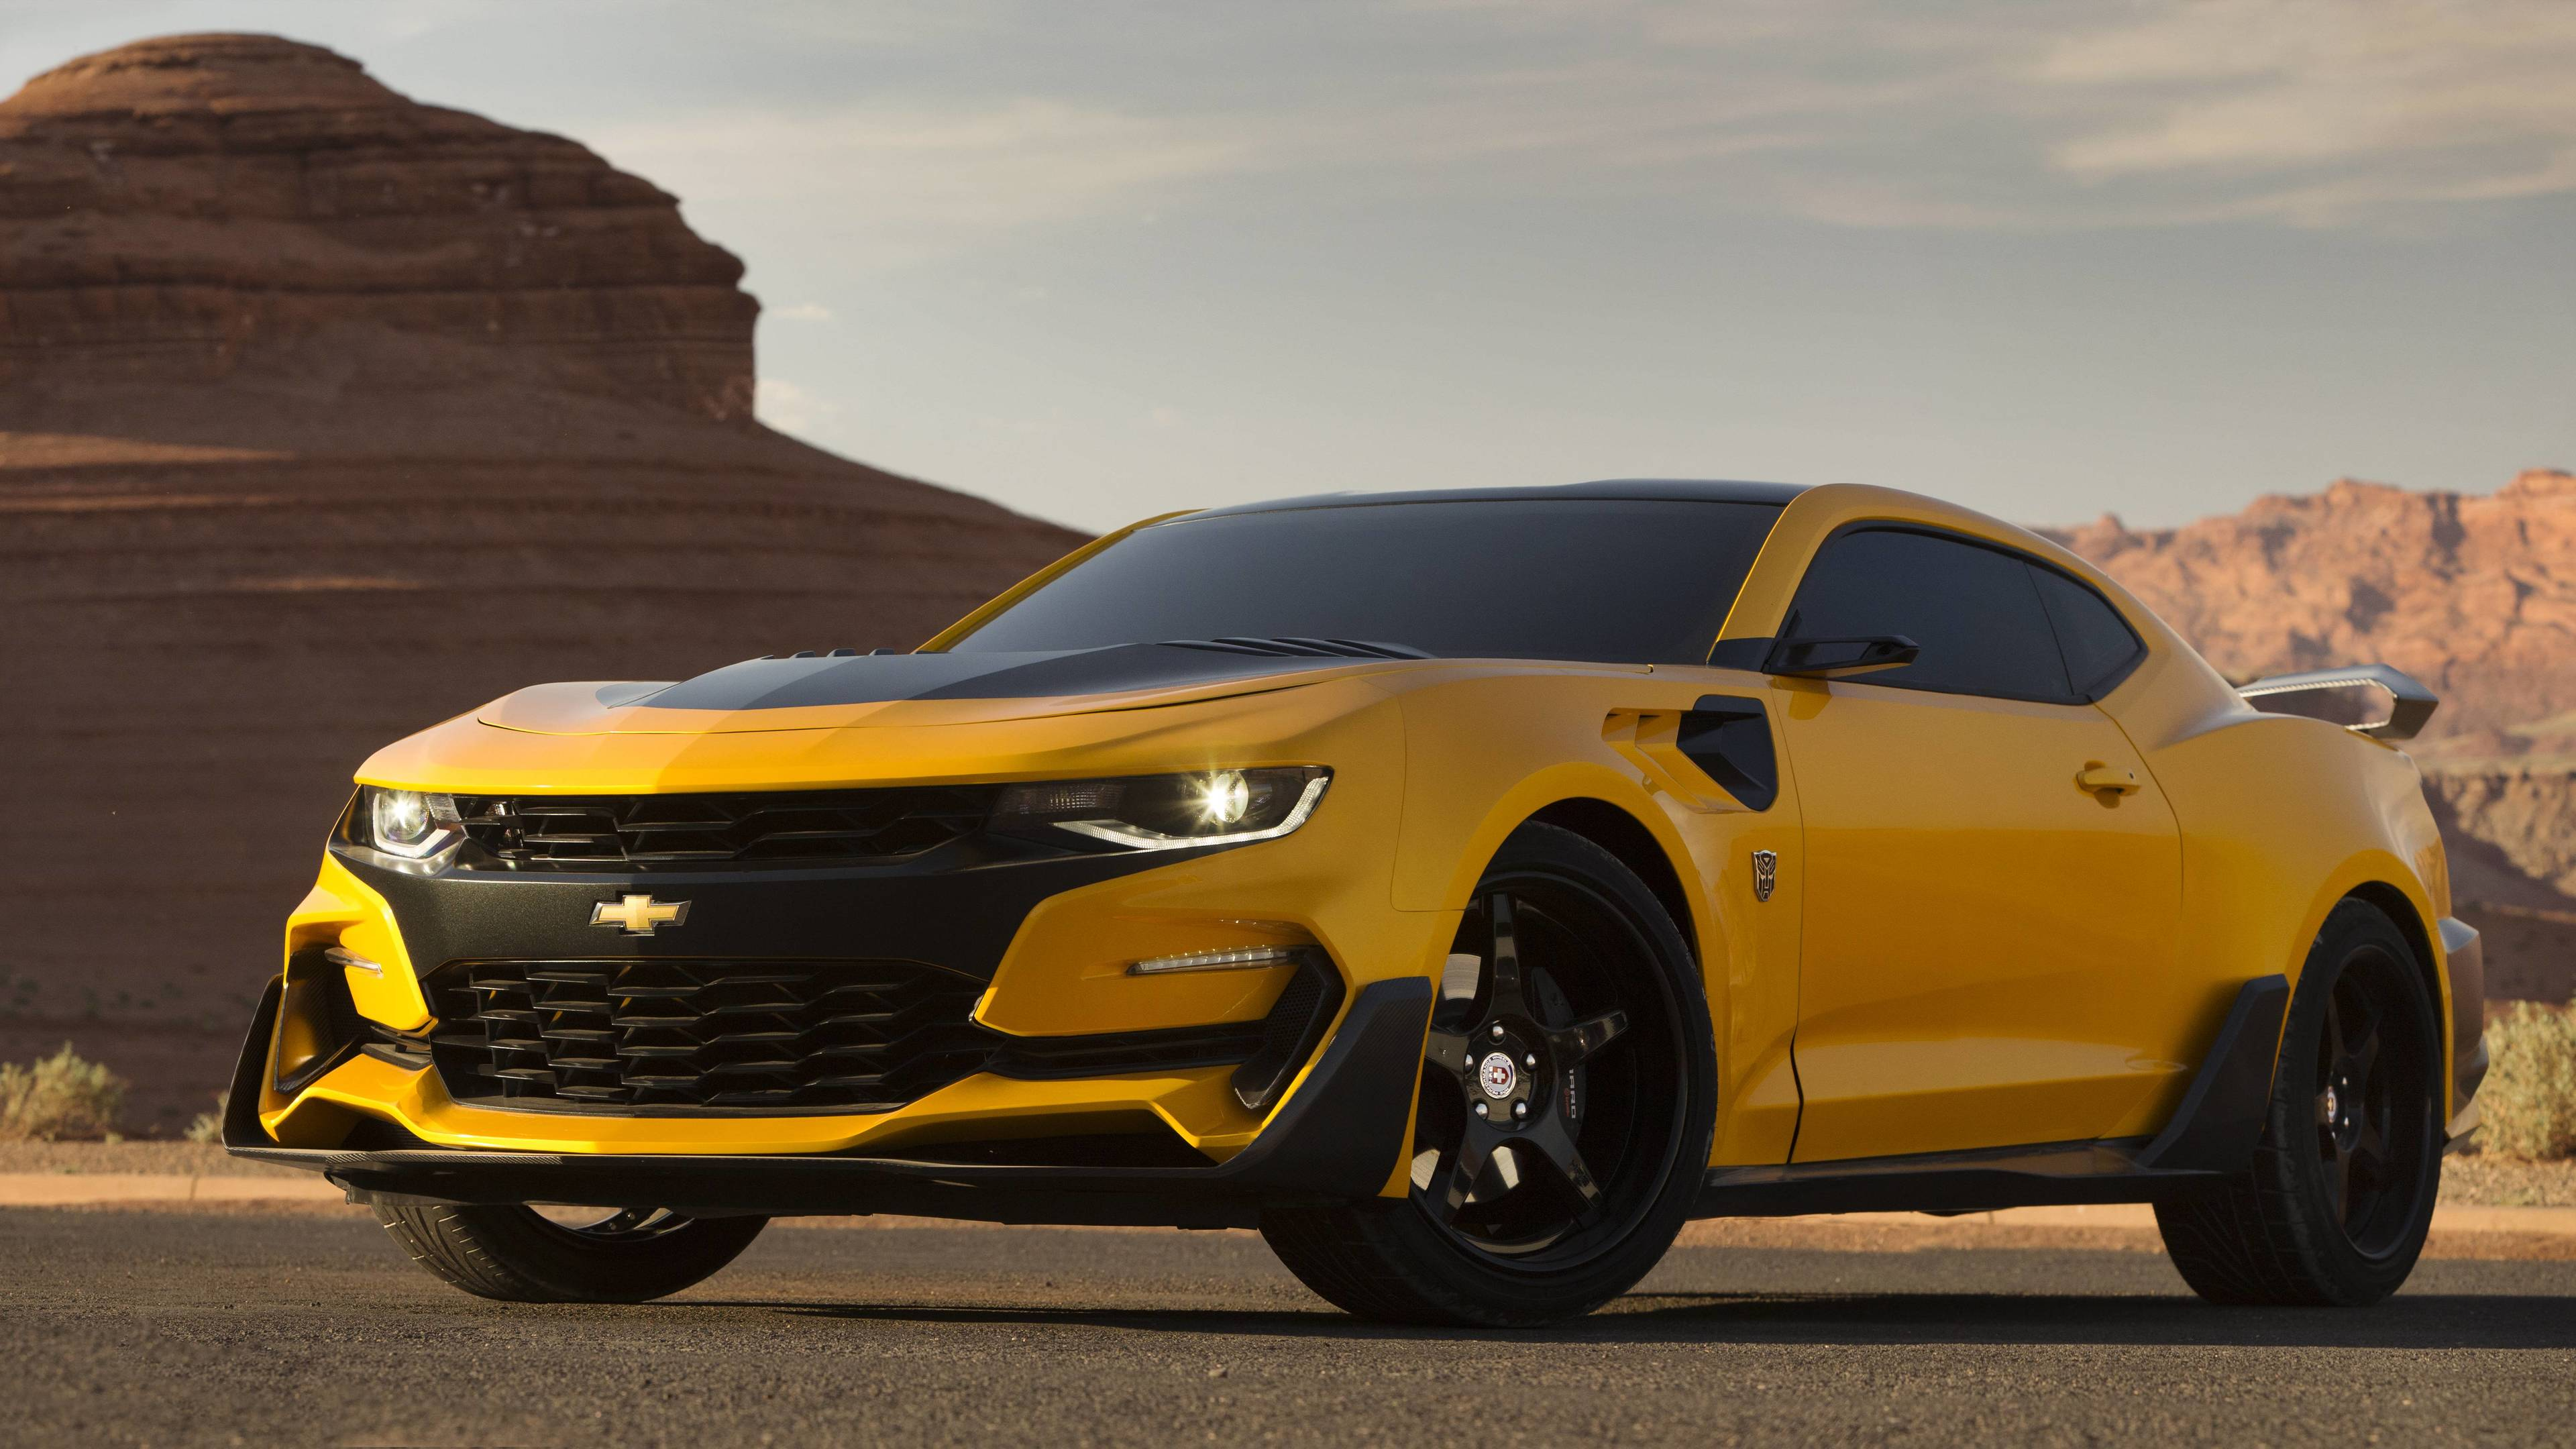 new bumblebee transfromers the last knight 1539104628 - New Bumblebee Transfromers The Last Knight - transformers the last knight wallpapers, transformers 5 wallpapers, movies wallpapers, chevrolet wallpapers, cars wallpapers